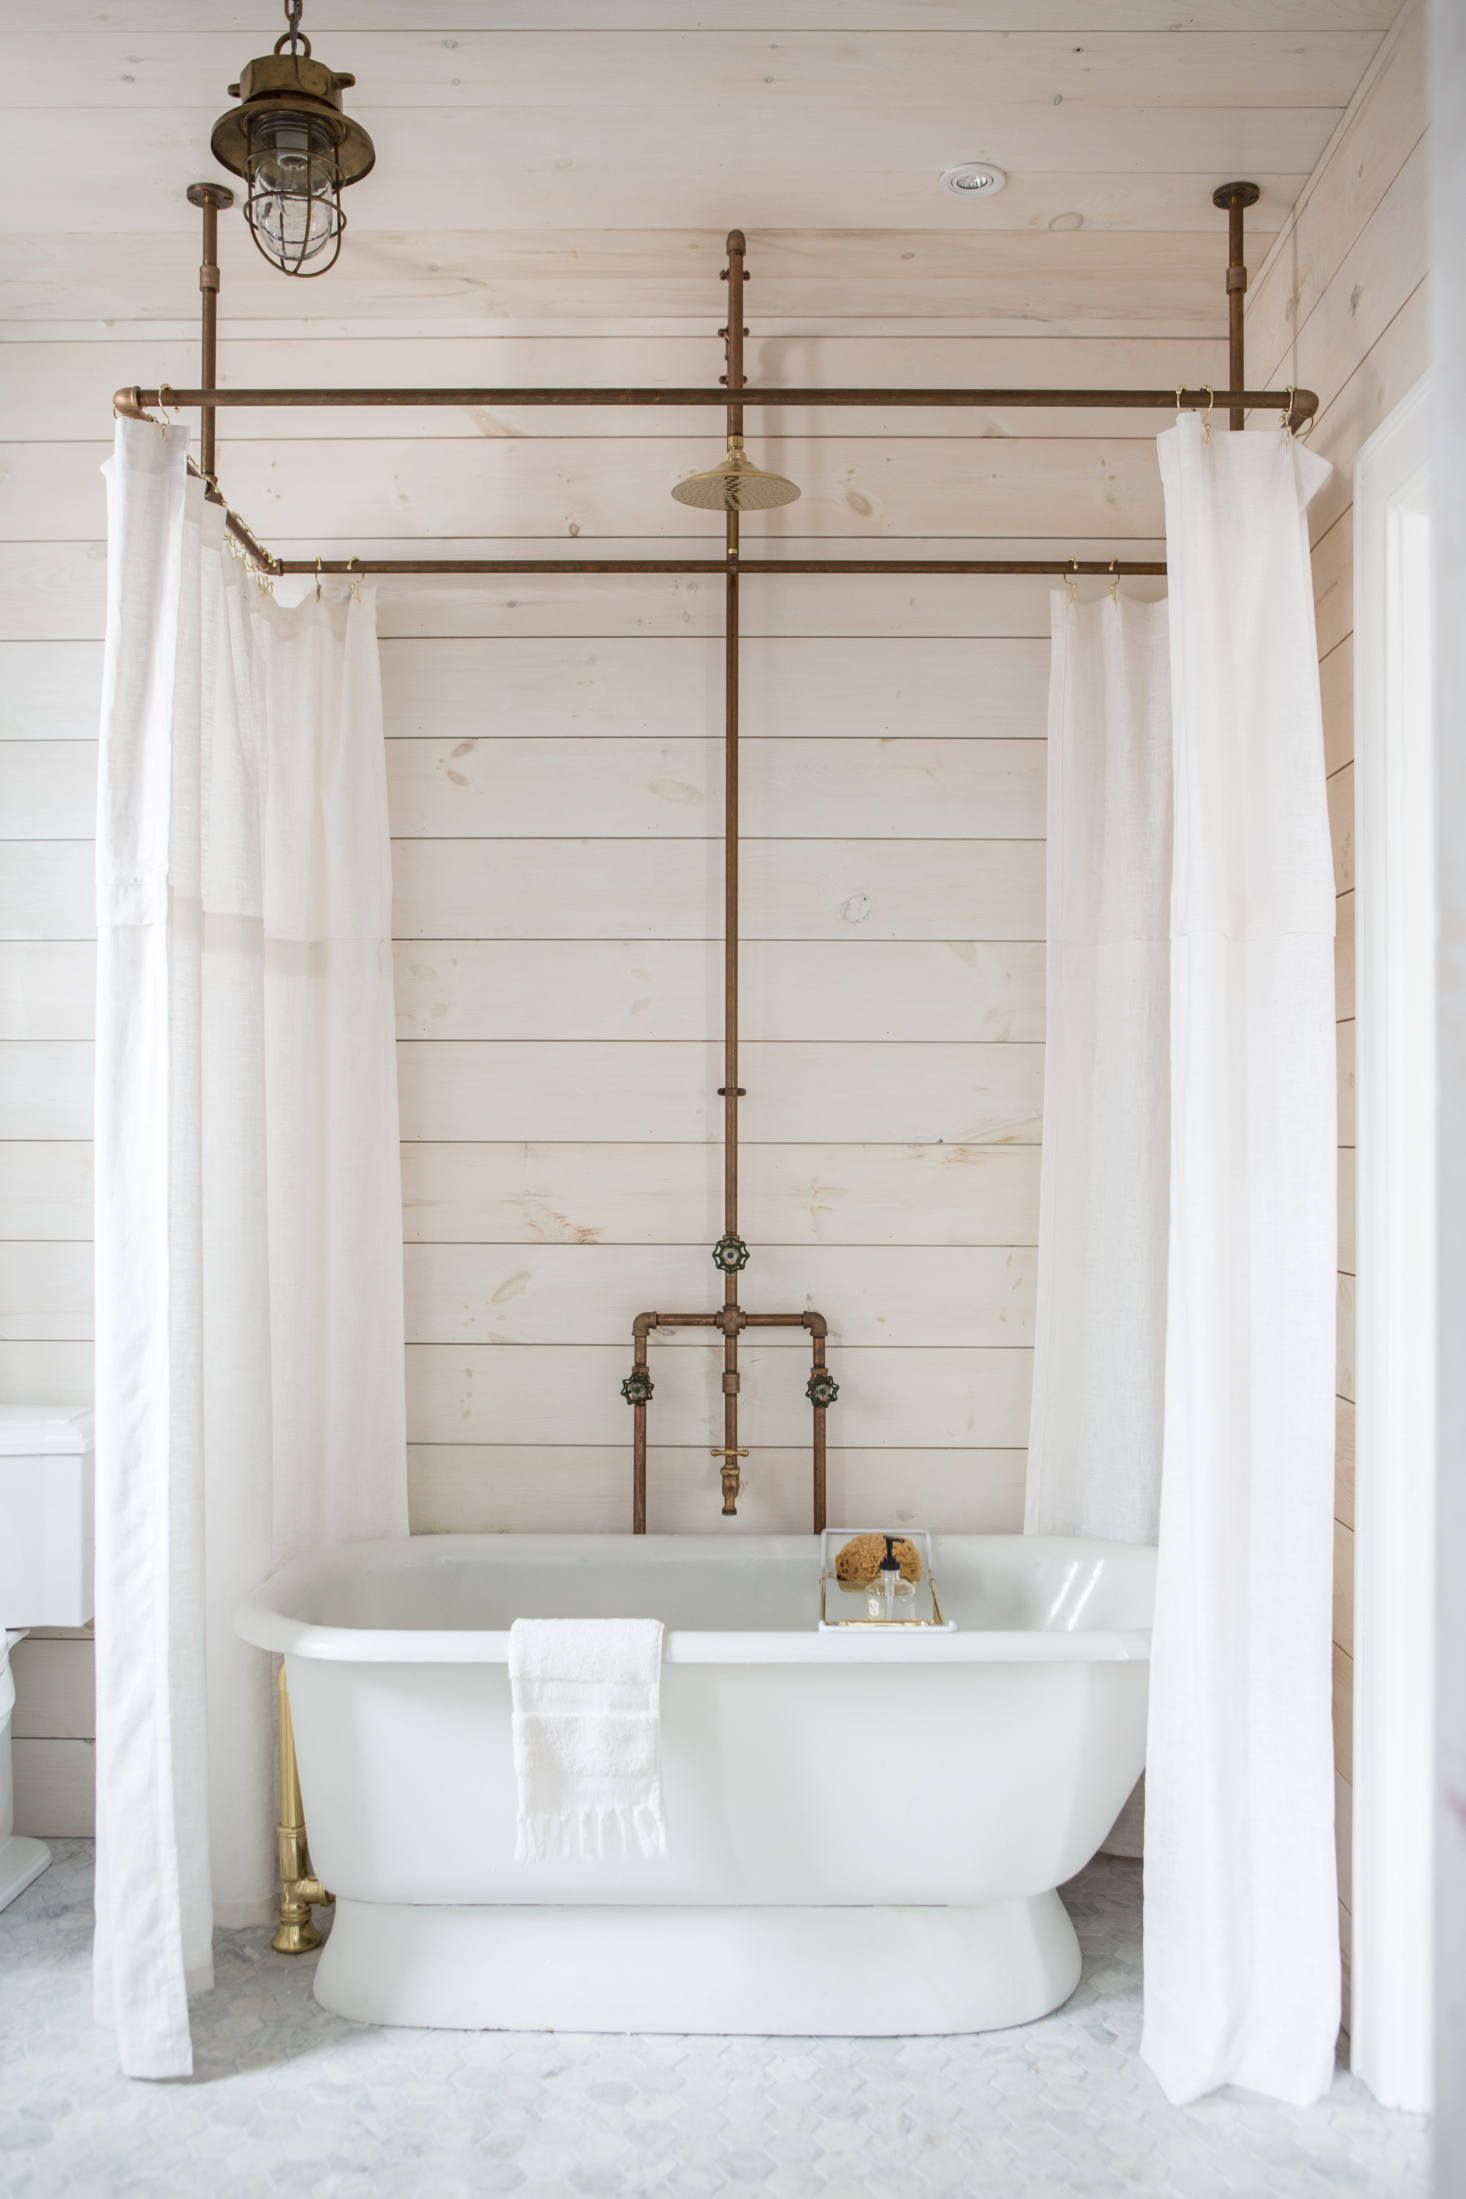 An Antique Soaking Tub Is Ringed By Custom Linen Shower Curtains